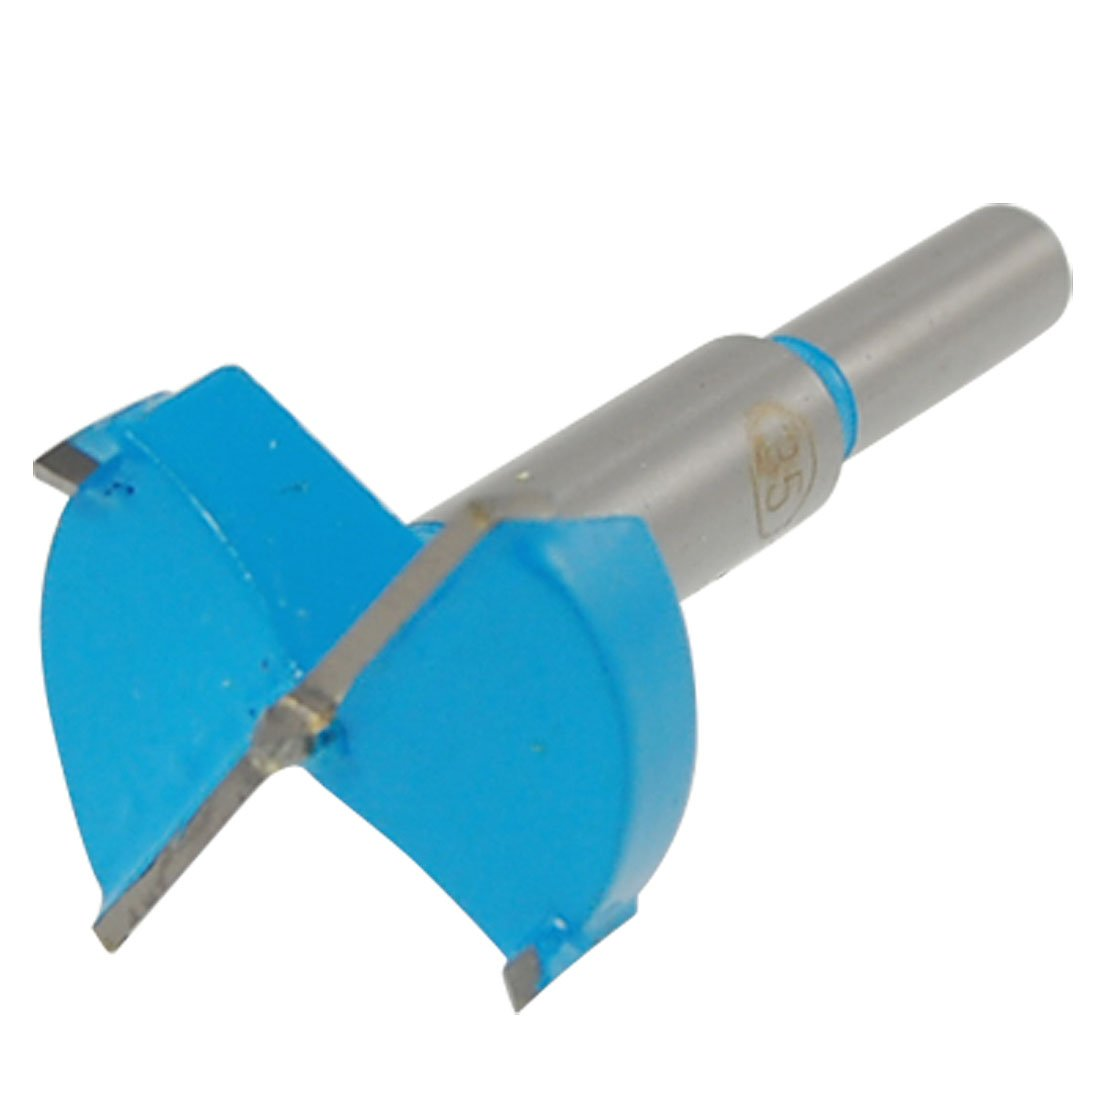 35MM Carbide Tipped Hinge Cutter Special Design Boring Drill Wood Hole Drill Bit